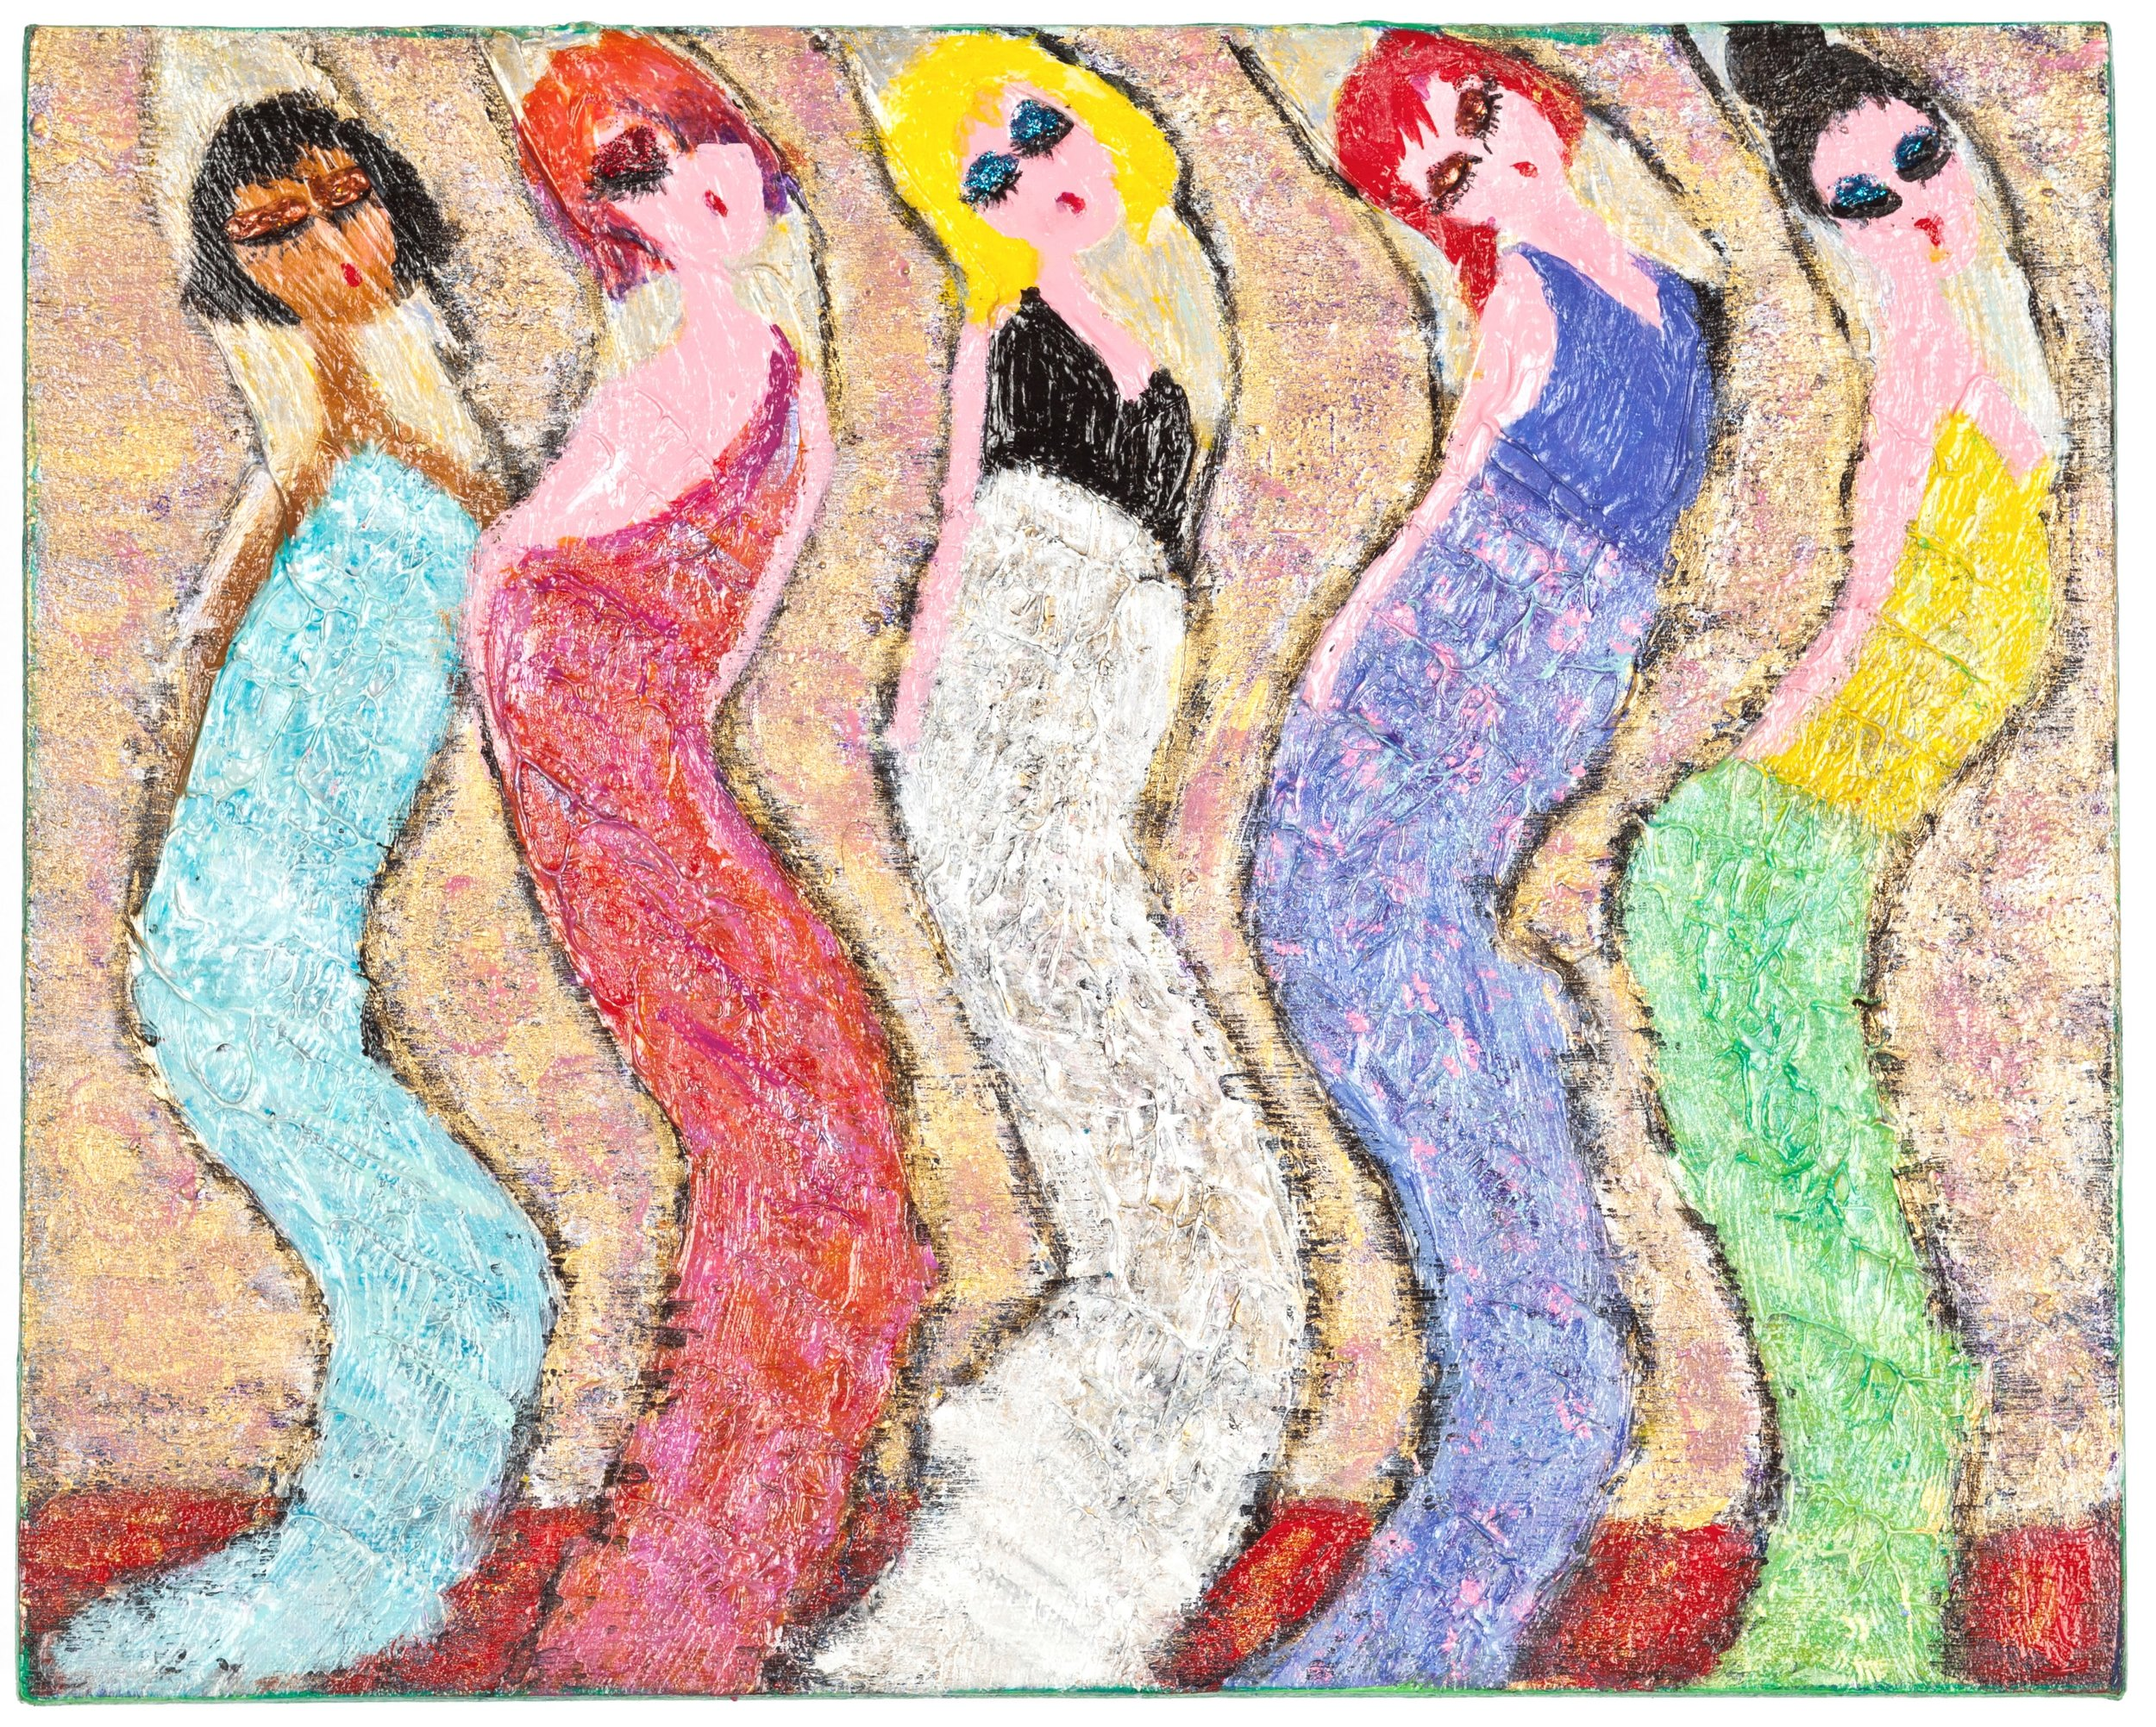 """Glam Girls Uptown Glam You Up, 2015   10""""x8"""" acrylic, molding paste, glitter on cradled wood panel  SOLD"""